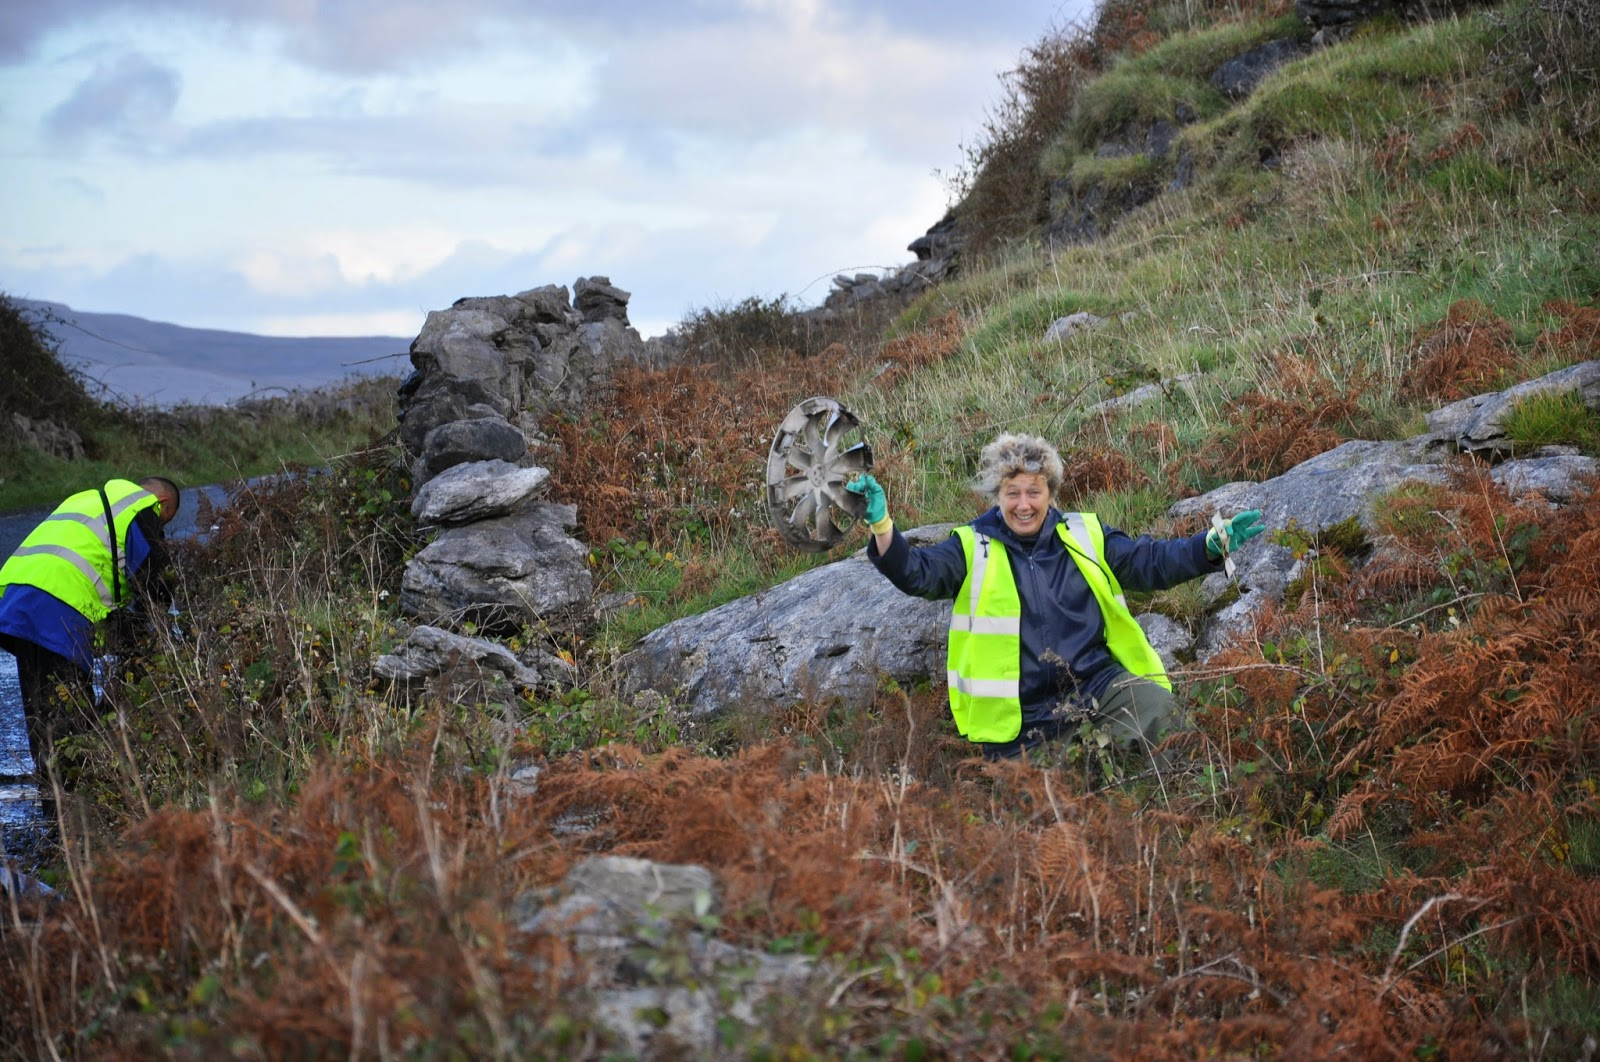 Burren businesses combat litter and invasive species